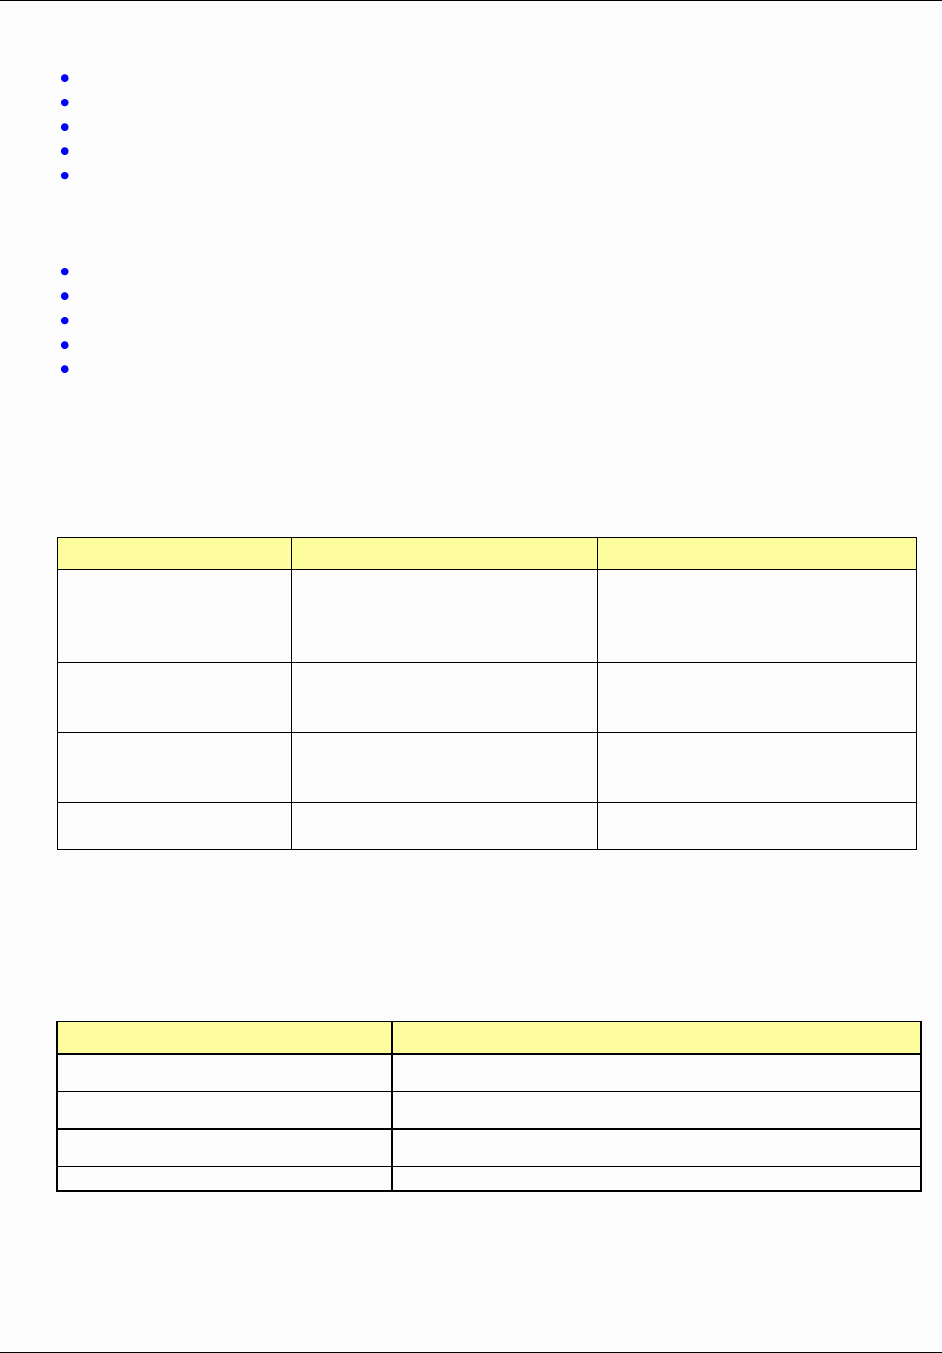 Test Plan Template In Word and Pdf formats Page 7 Of 11